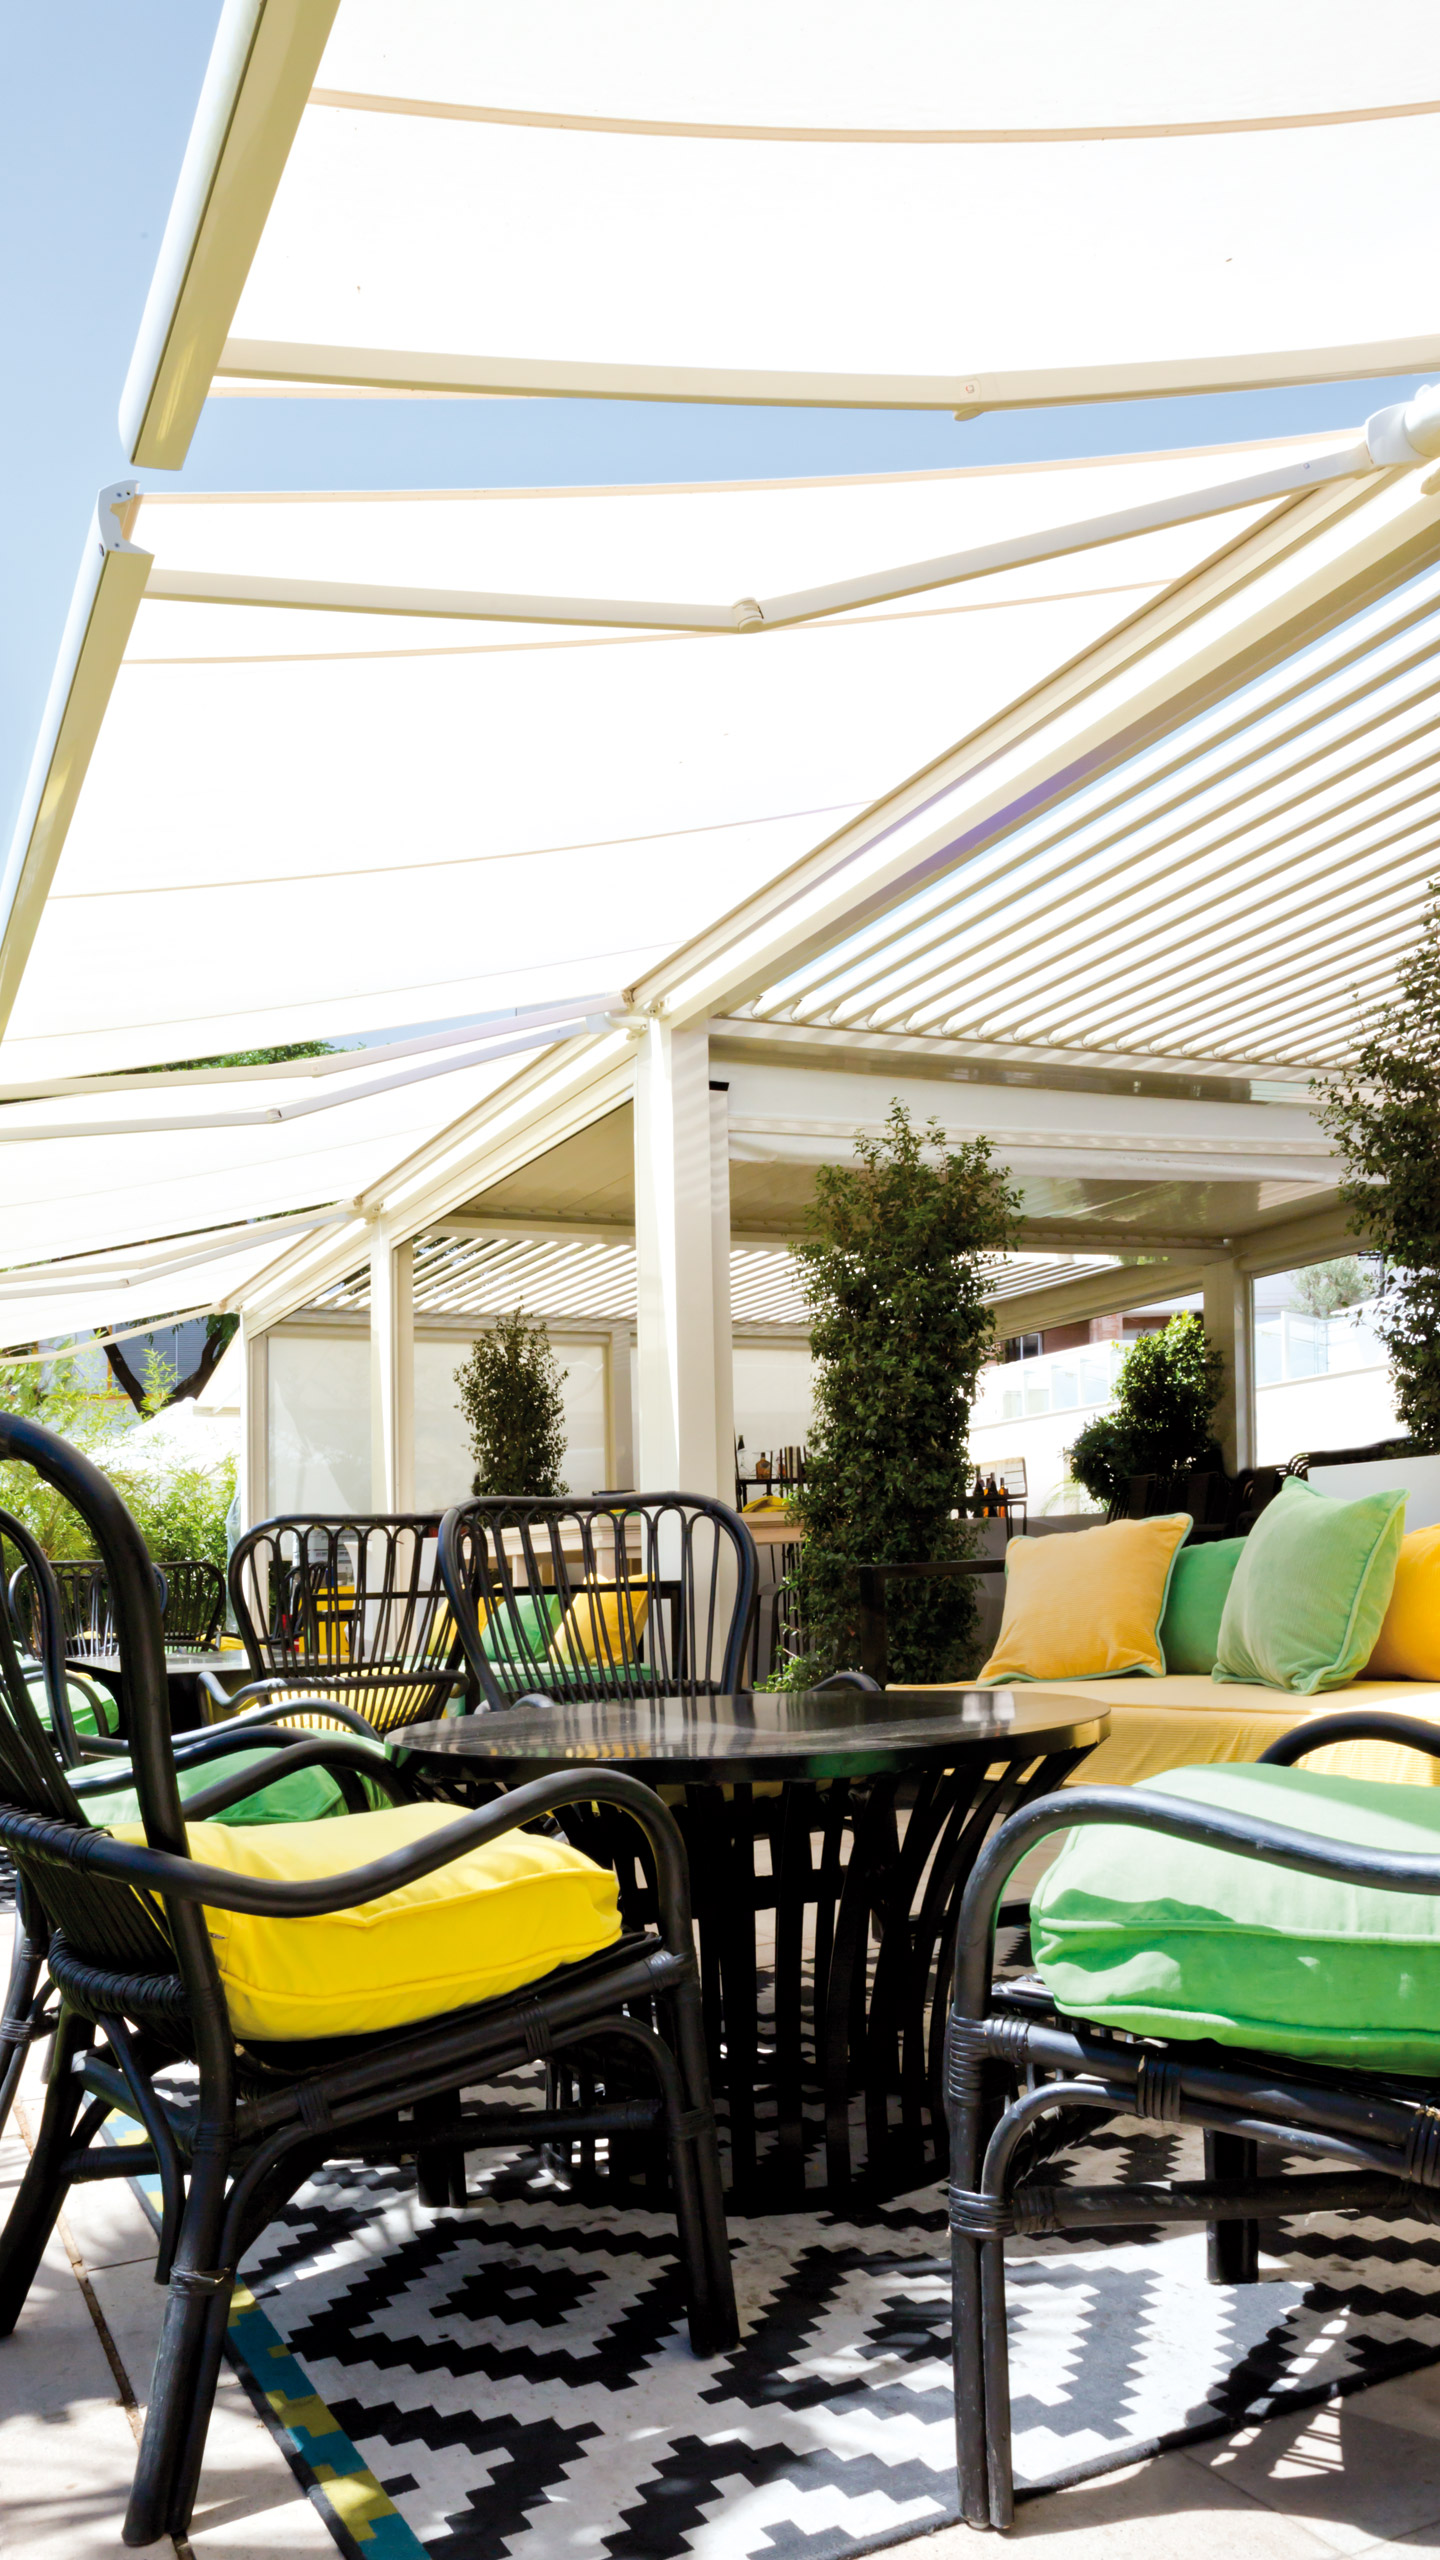 Saxun pergolas and awnings for leisure and catering areas